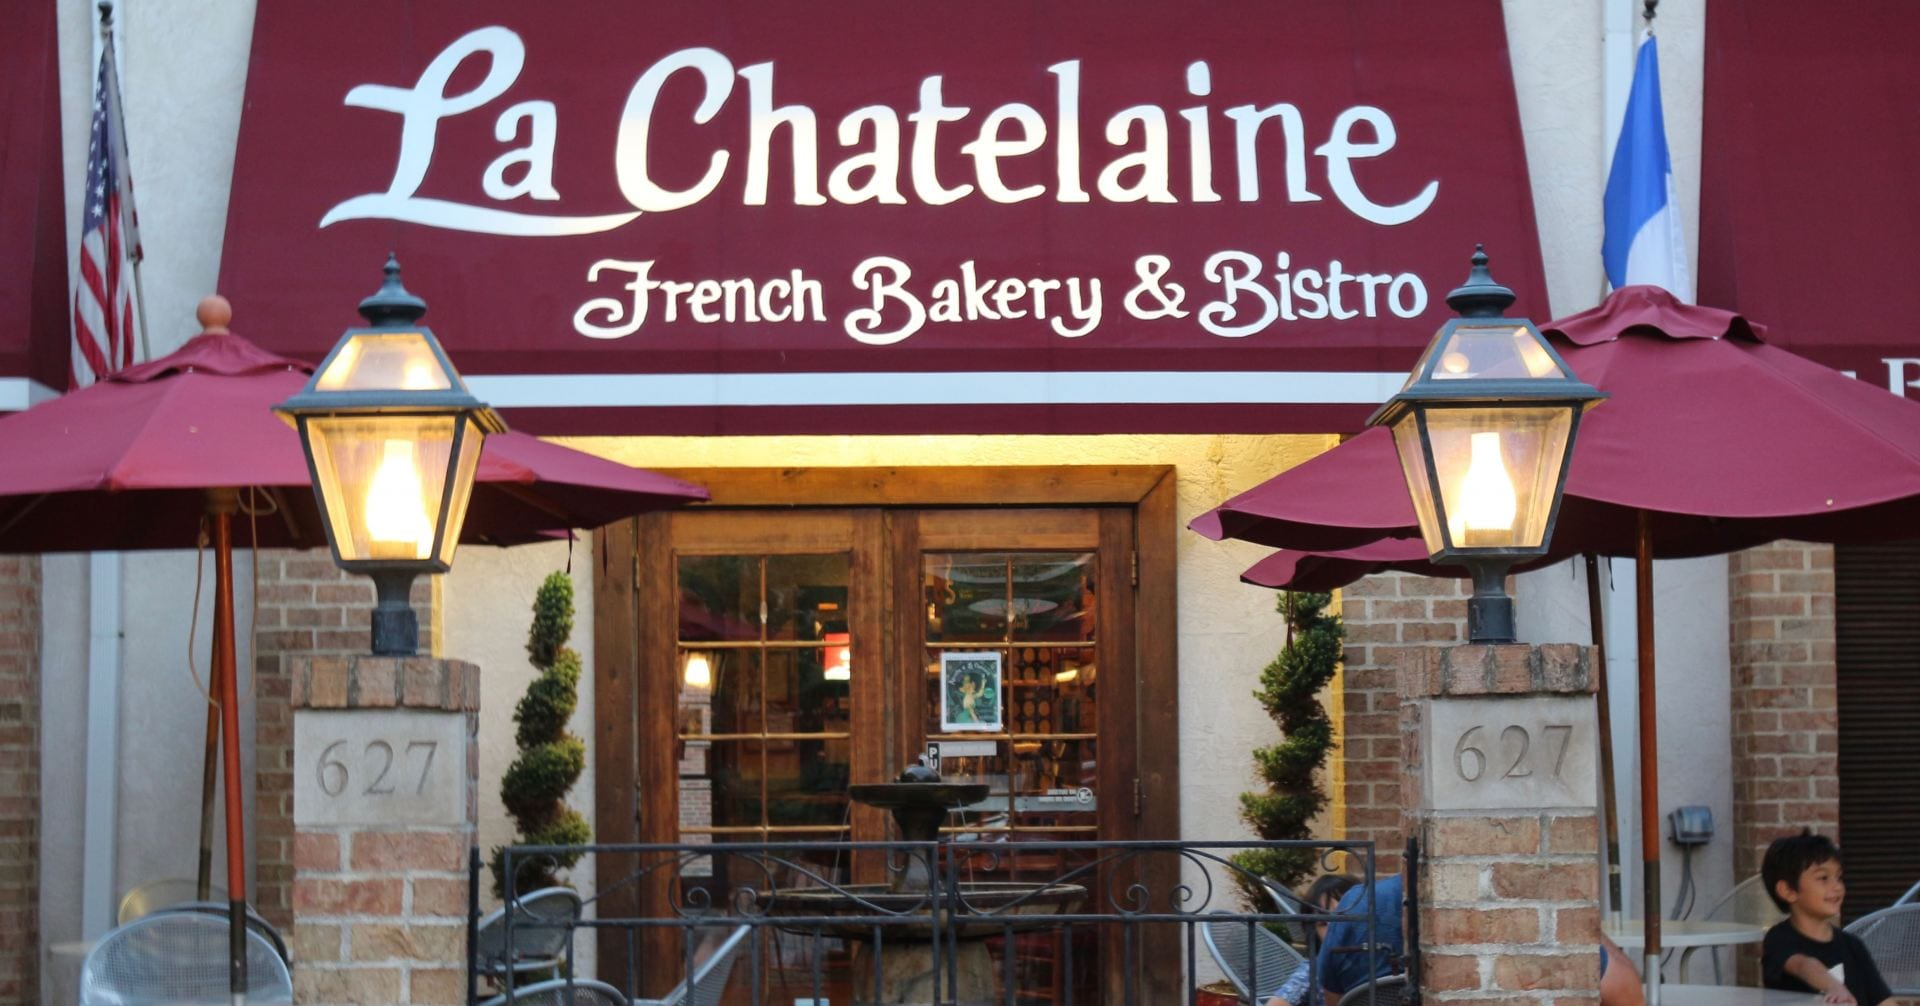 Restaurant Review La Châtelaine An Excellent French Bakery Inside A Basic